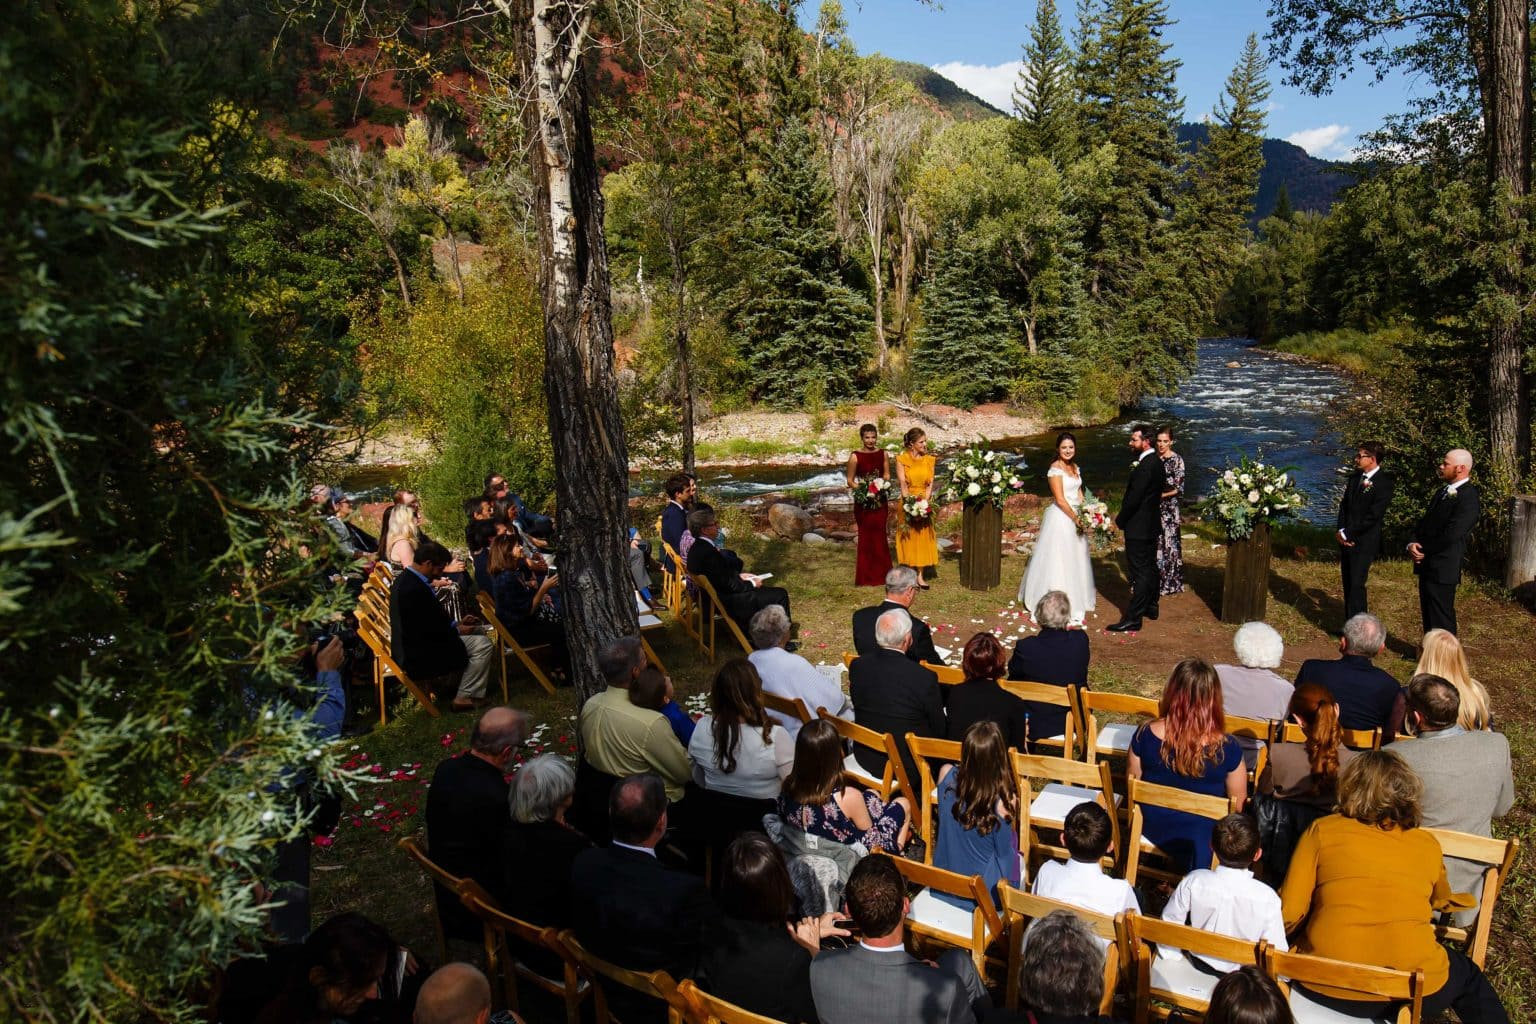 The couple looks out to guests as the creek rushes in the background during their fall wedding ceremony at Snowmass Cottages in Colorado